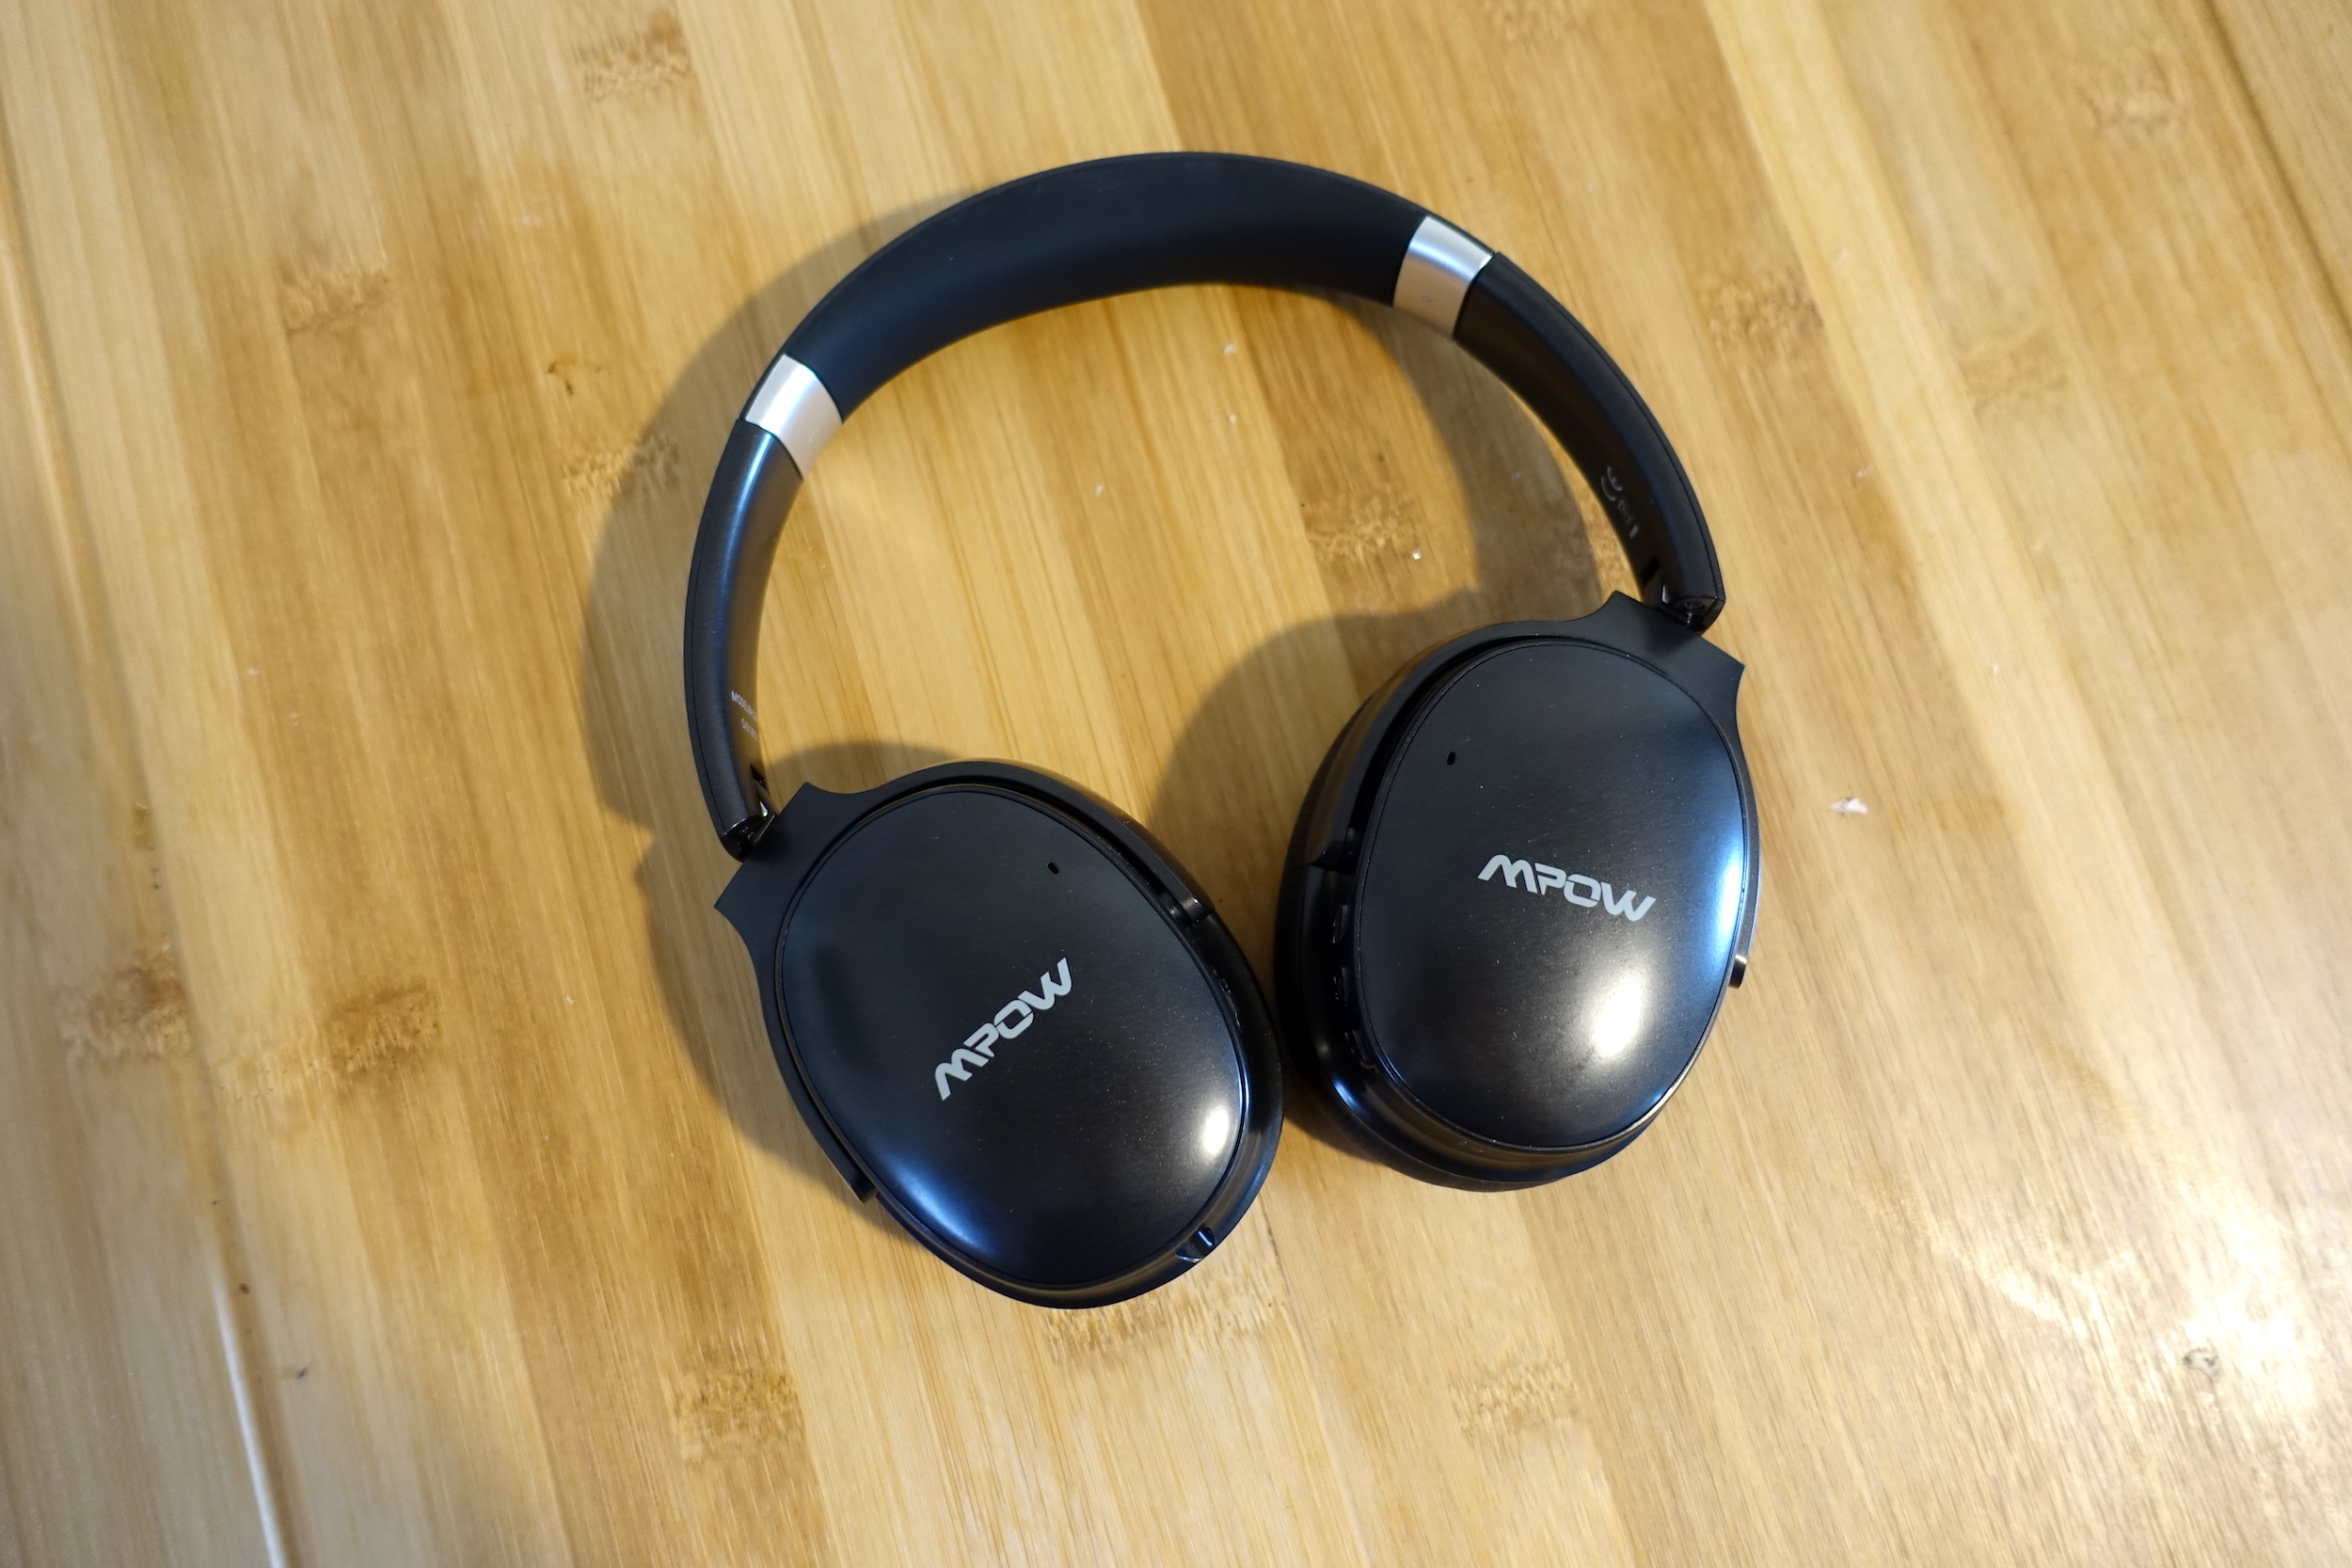 The Mpow H10 wireless noise-cancelling headphones.